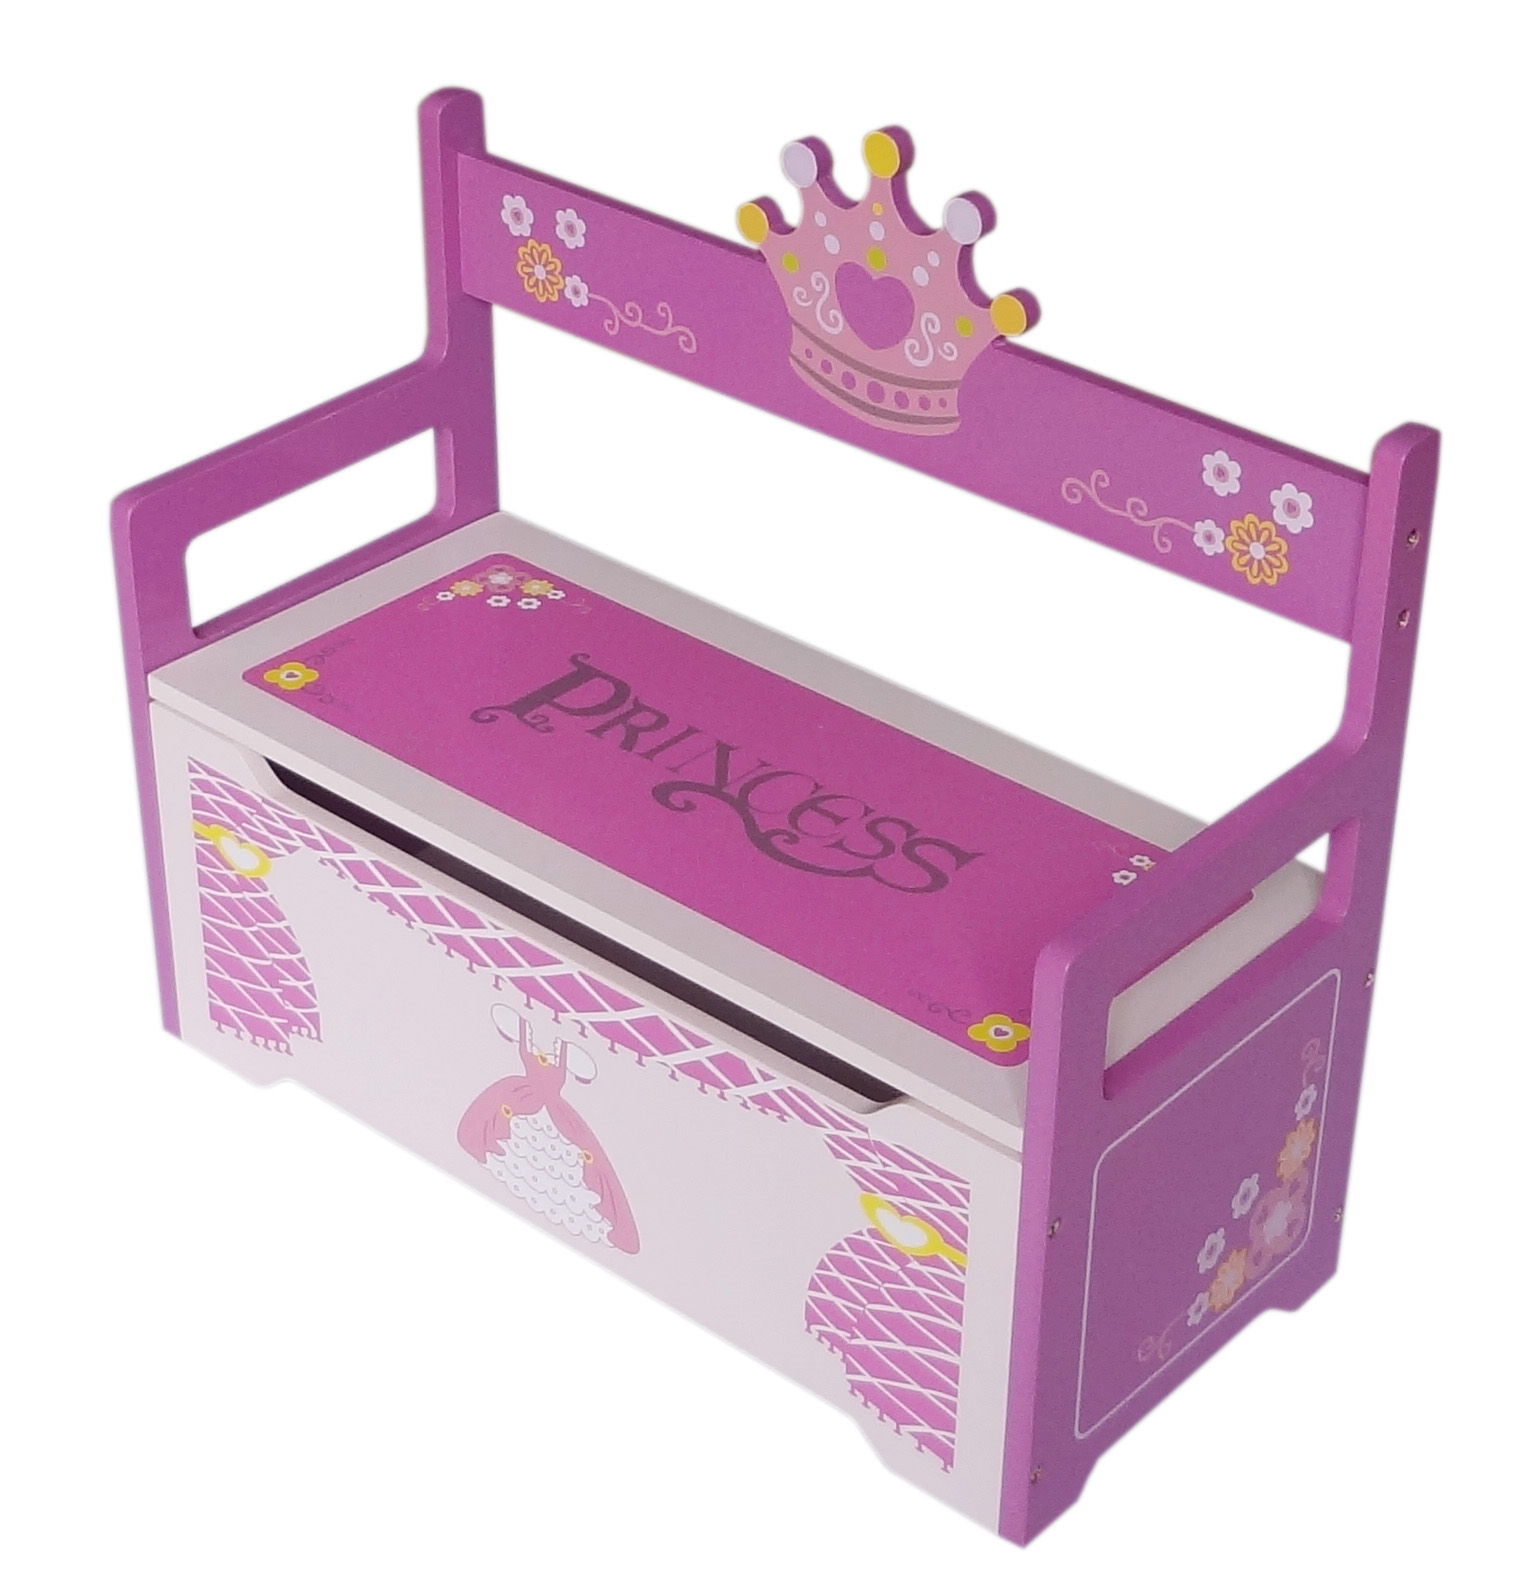 Childrens Jumbo Bedroom Room Tidy Toy Storage Chest Box Trunk: Kiddi Style Princess Themed Childrens Toy Box & Bench